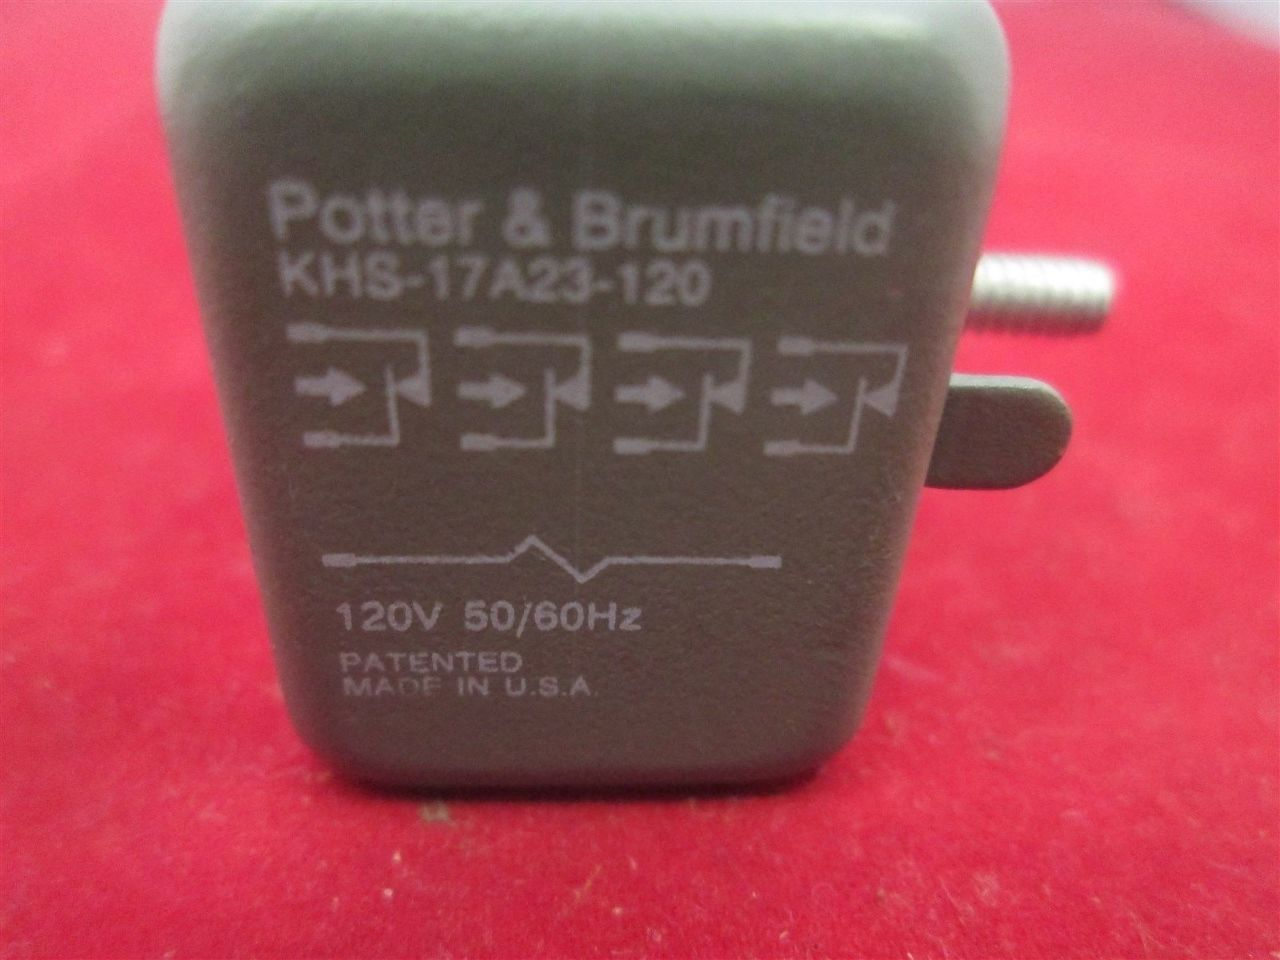 Potter Amp Brumfield Khs 17a23 120 Relay